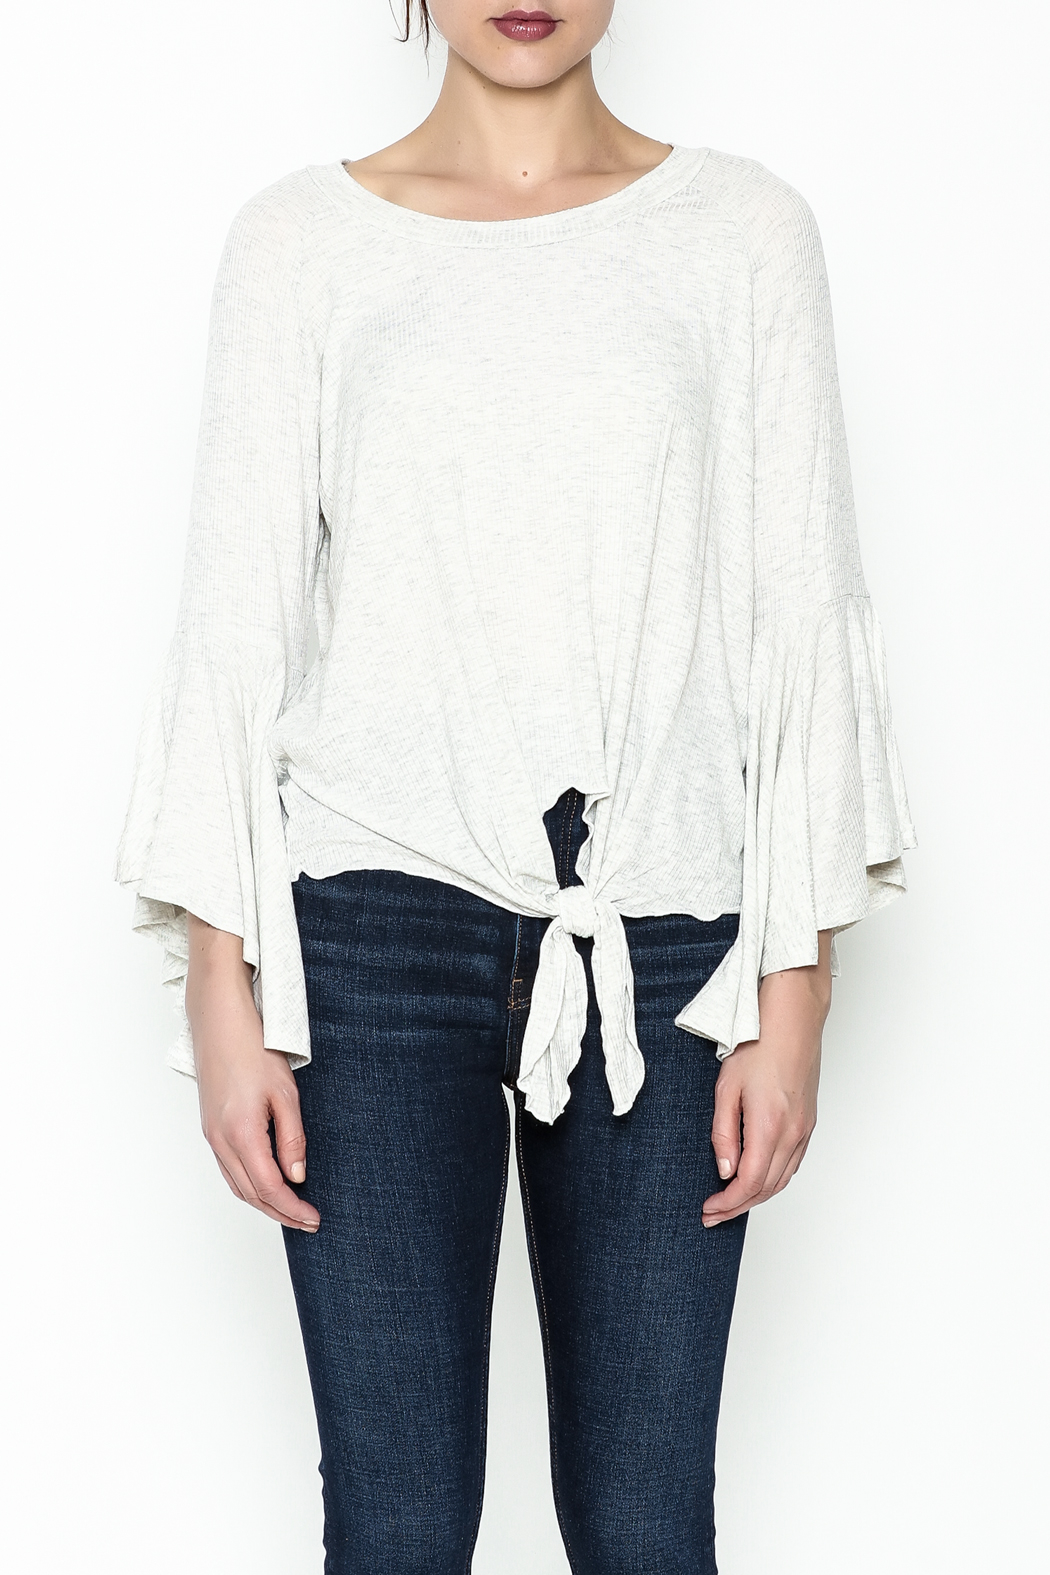 Polly & Esther Tie Front Top - Front Full Image